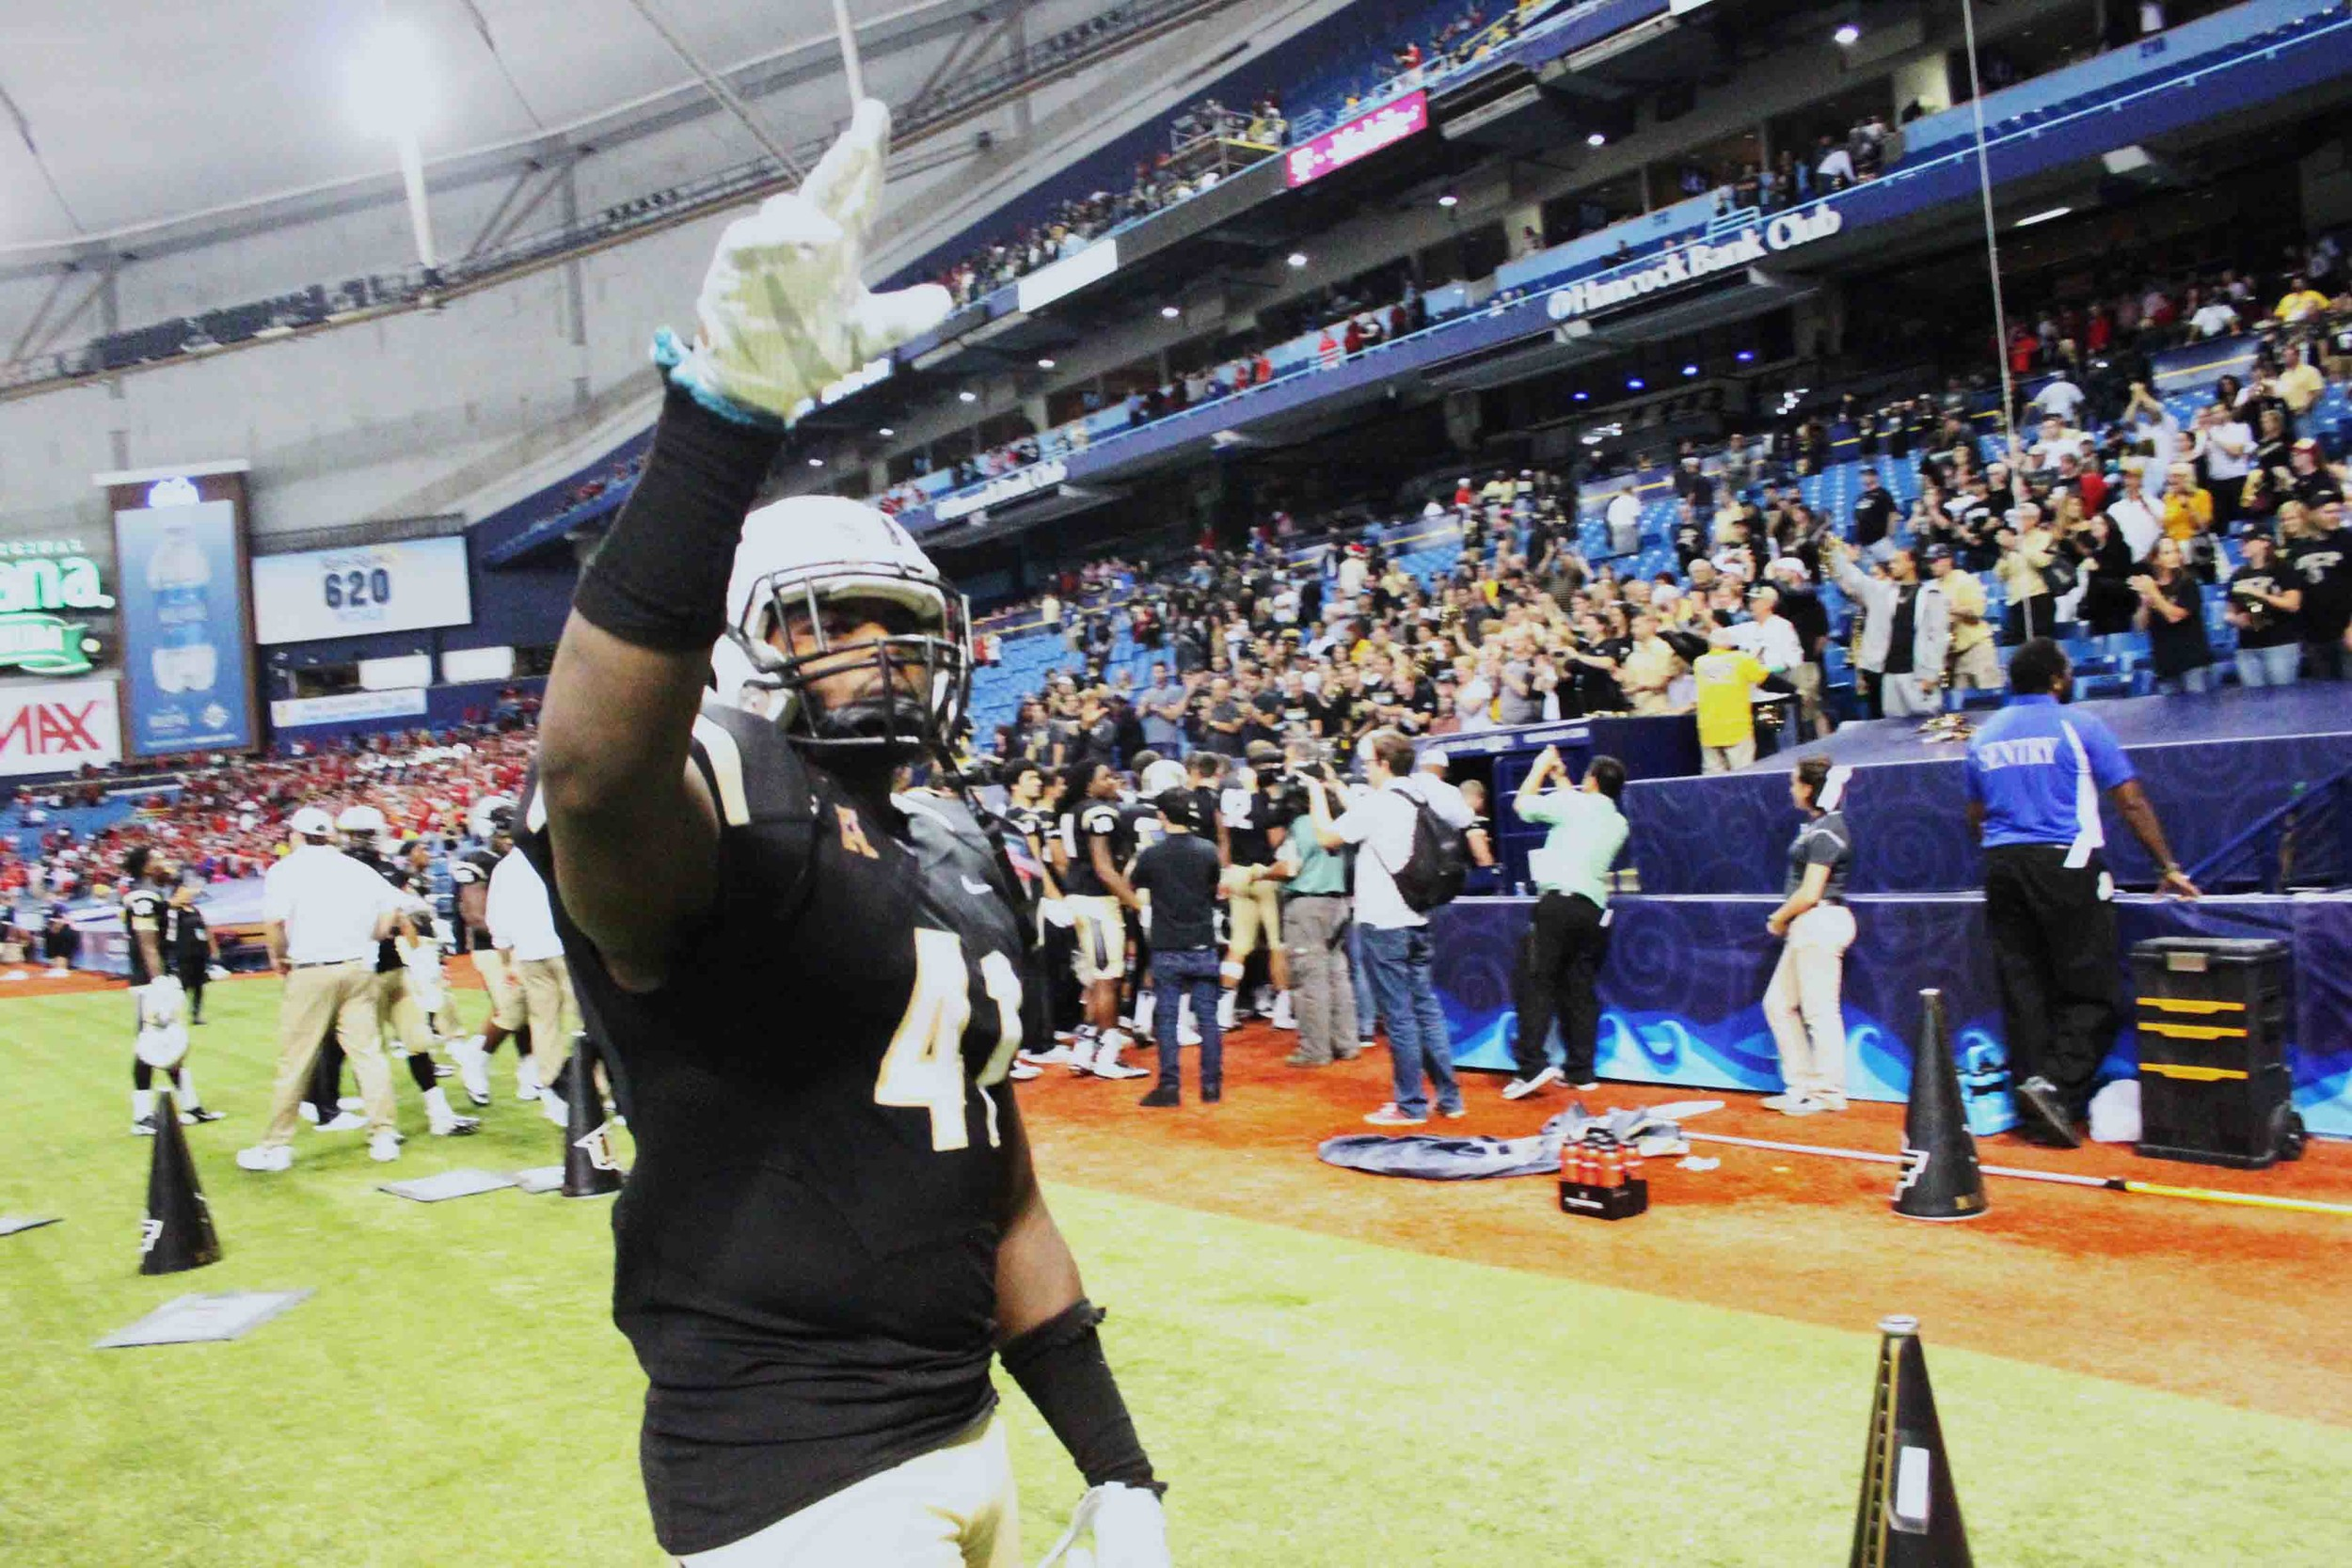 Orange Park High football standout Terrance Plummer had his final game in St. Petersburg at the Bitcoin St. Petersburg Bowl against North Carolina State. Plummer is with the NFL's Minnesota Vikings.